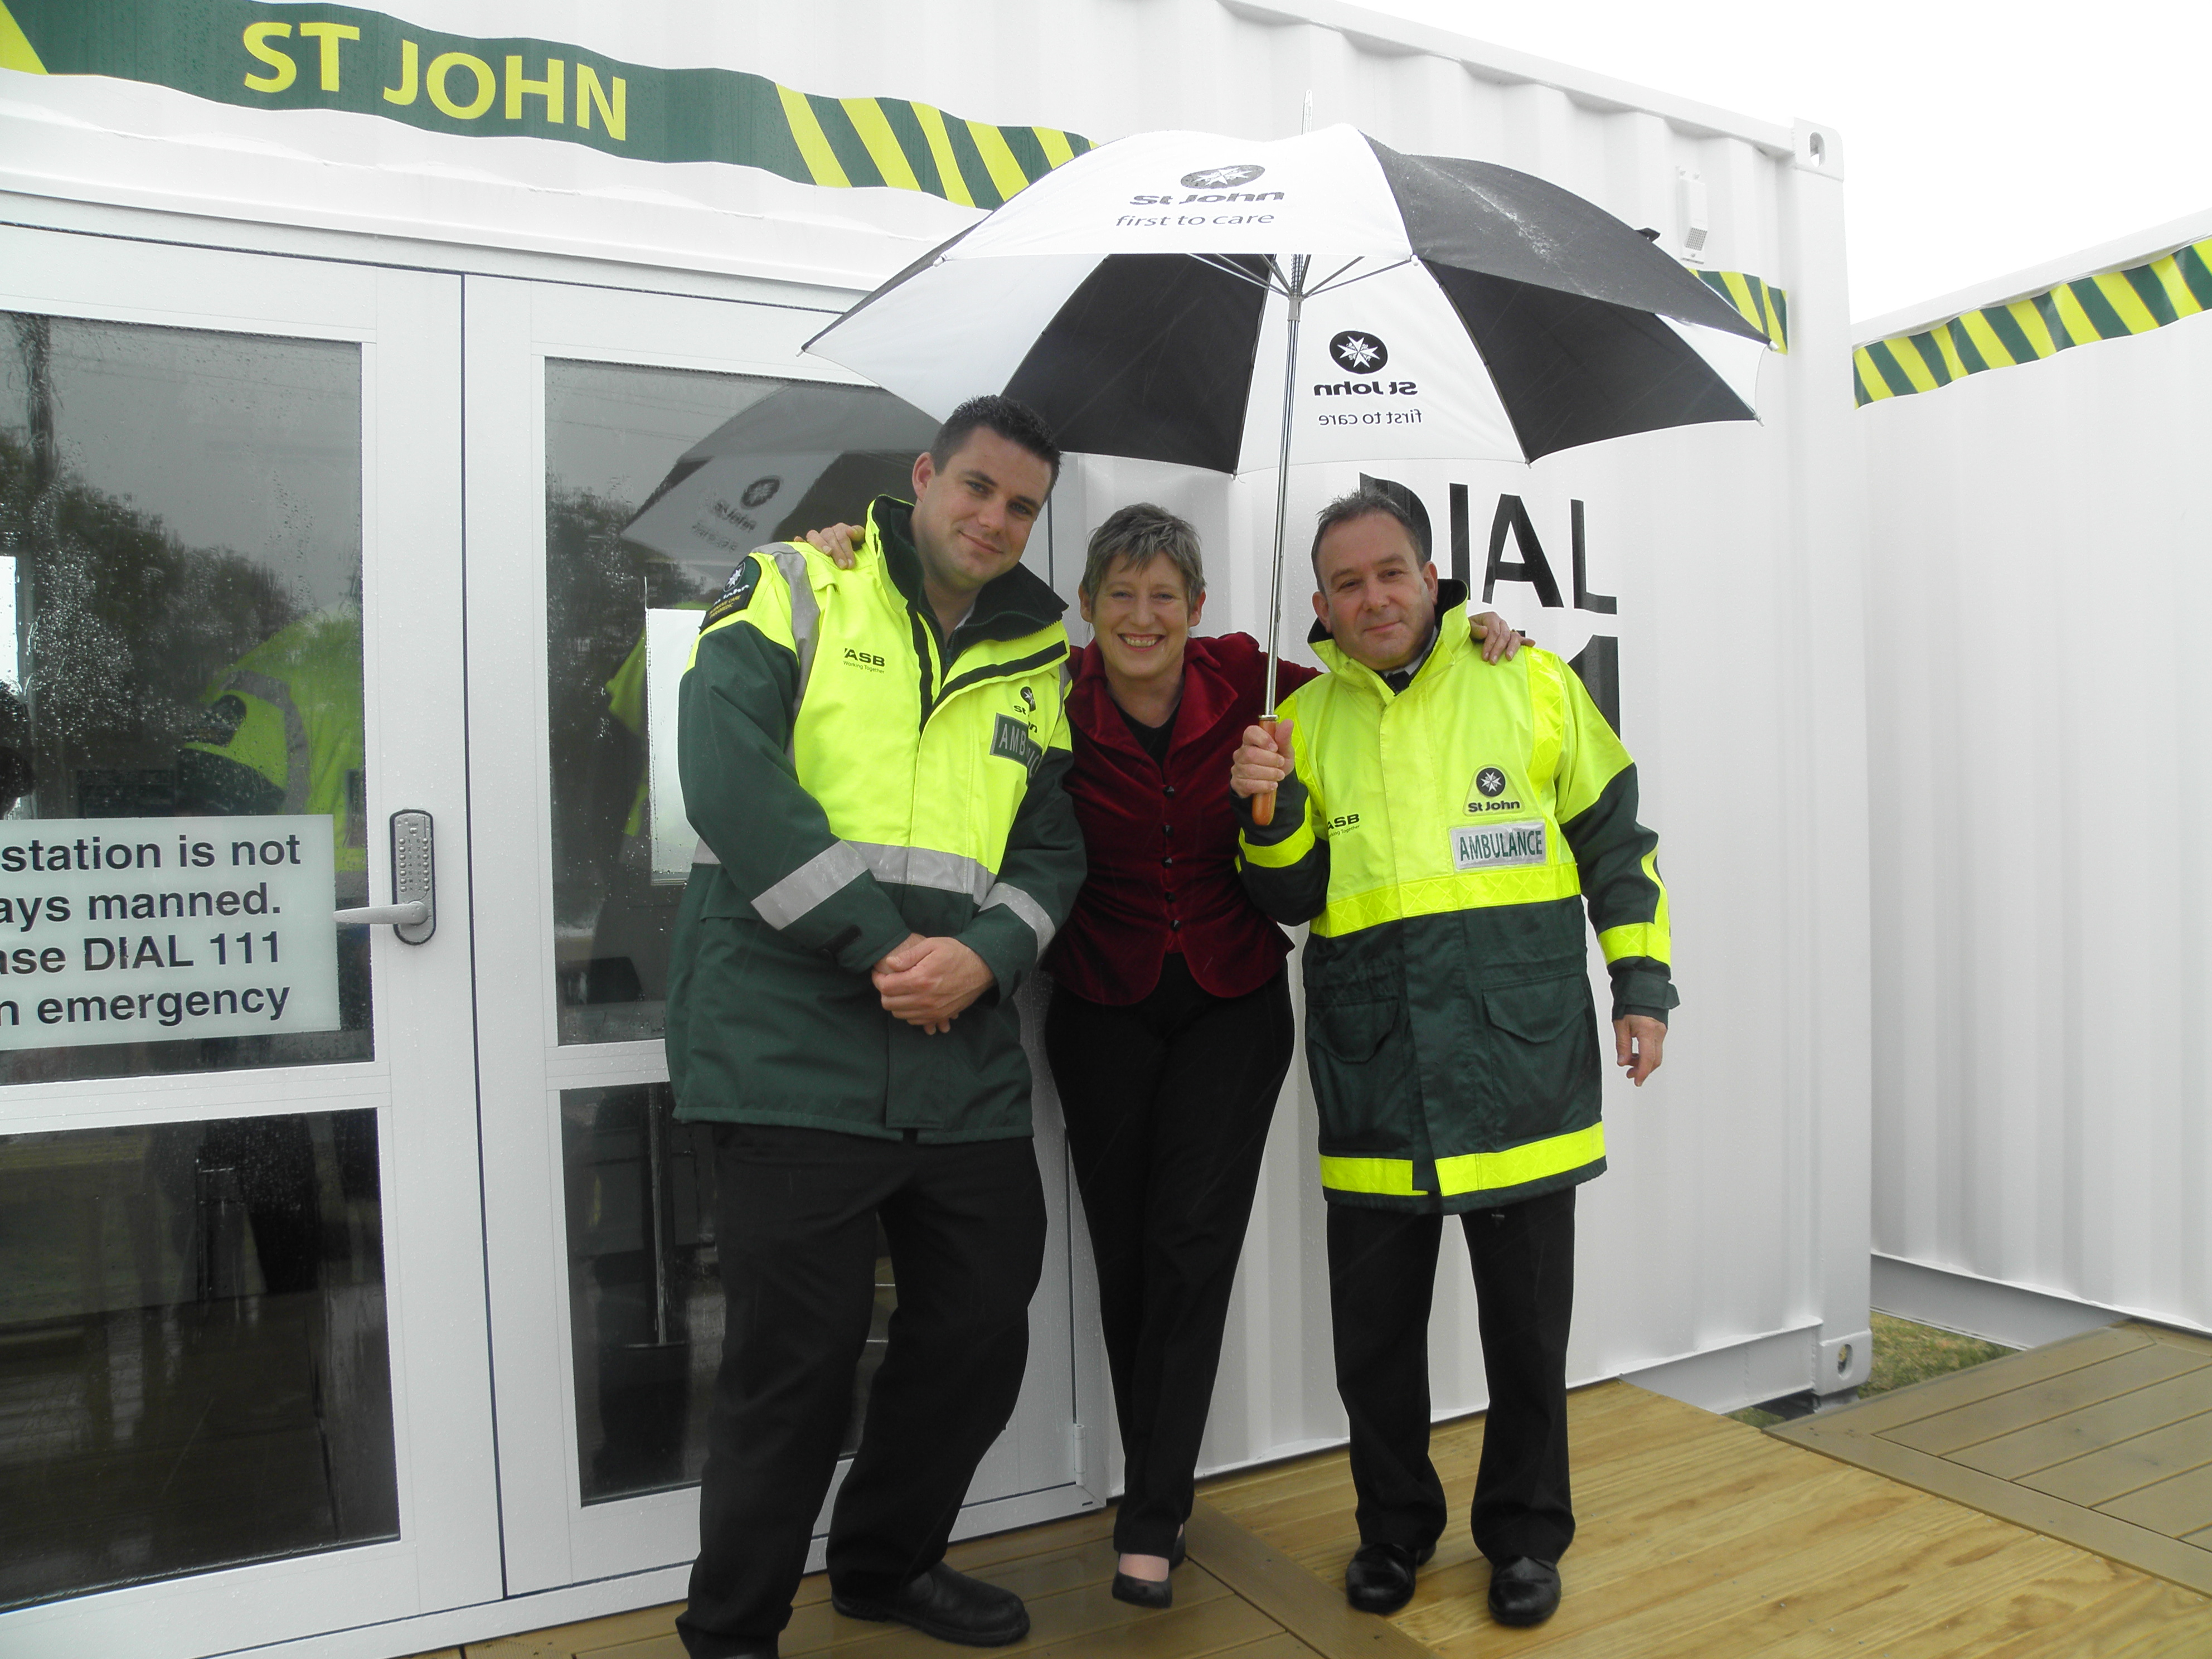 Portable ambulance station ChristchurchLianne DalzielChris HainesCurt Ward